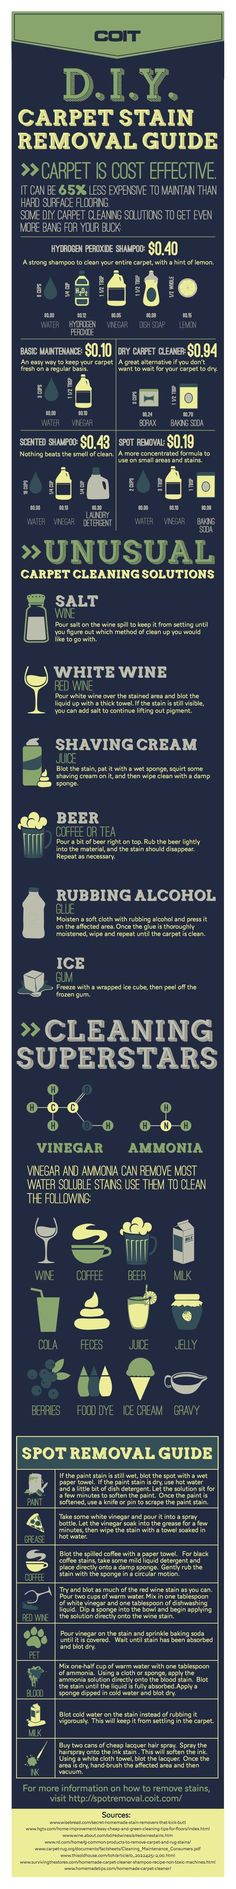 All you need to know about carpet cleaning solutions!